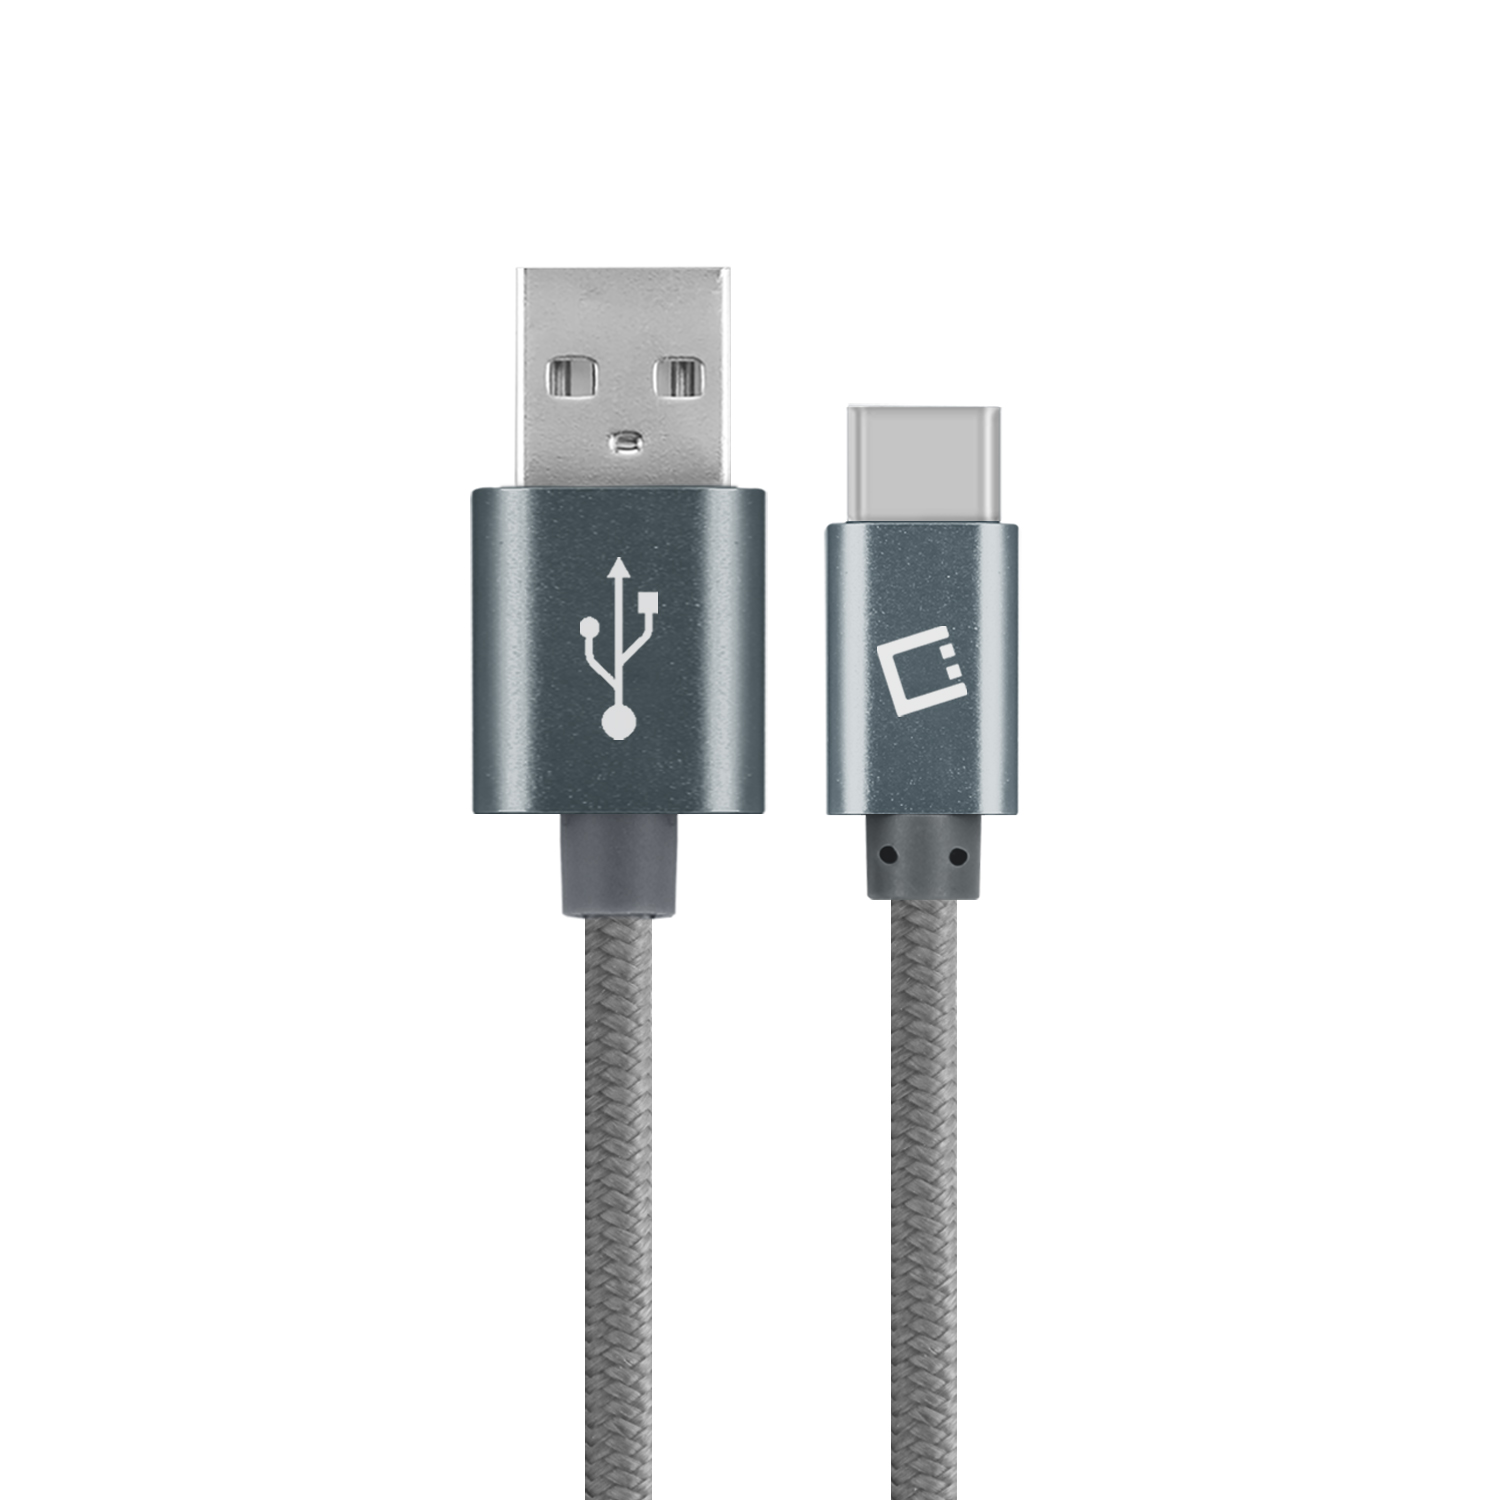 Blackberry KEYone USB Type-C To Type-A Braided Data Power Cable Grey 6ft Braided